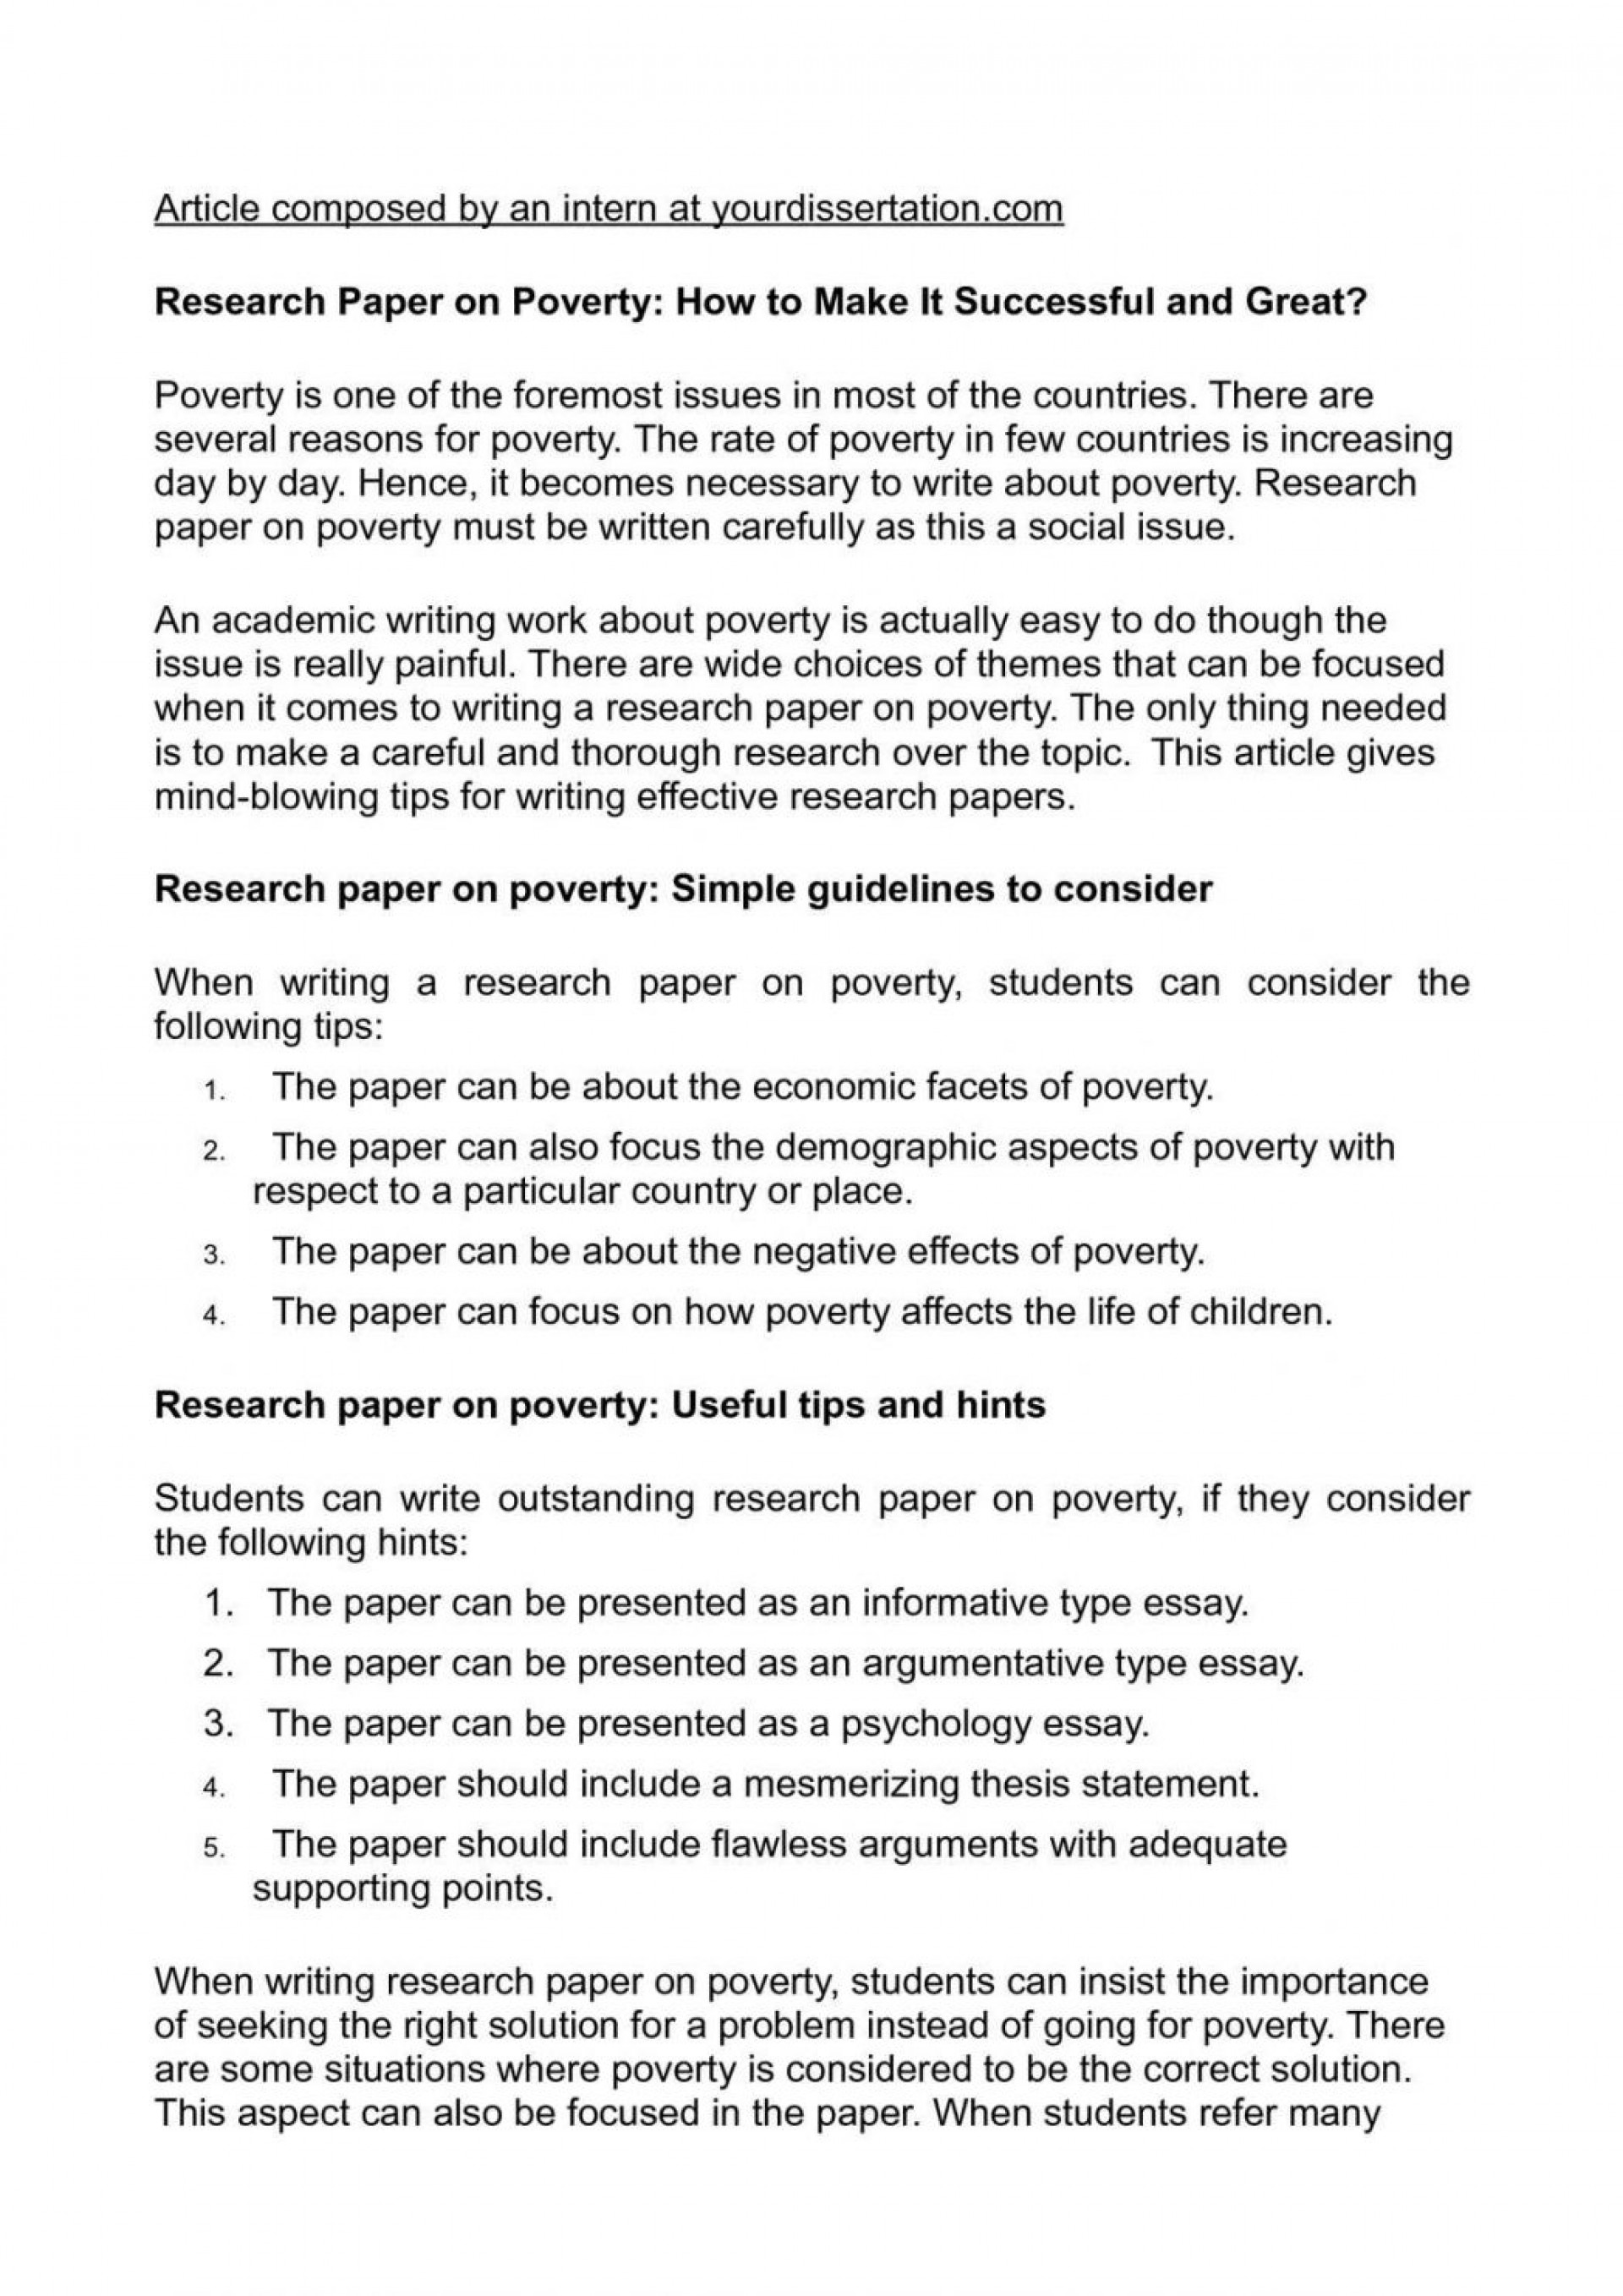 010 Research Paper On Poverty How To Make It Successful And Essay Writing In Pakist India Pakistan 1048x1483 Example Problem Wondrous Of Solution 1920